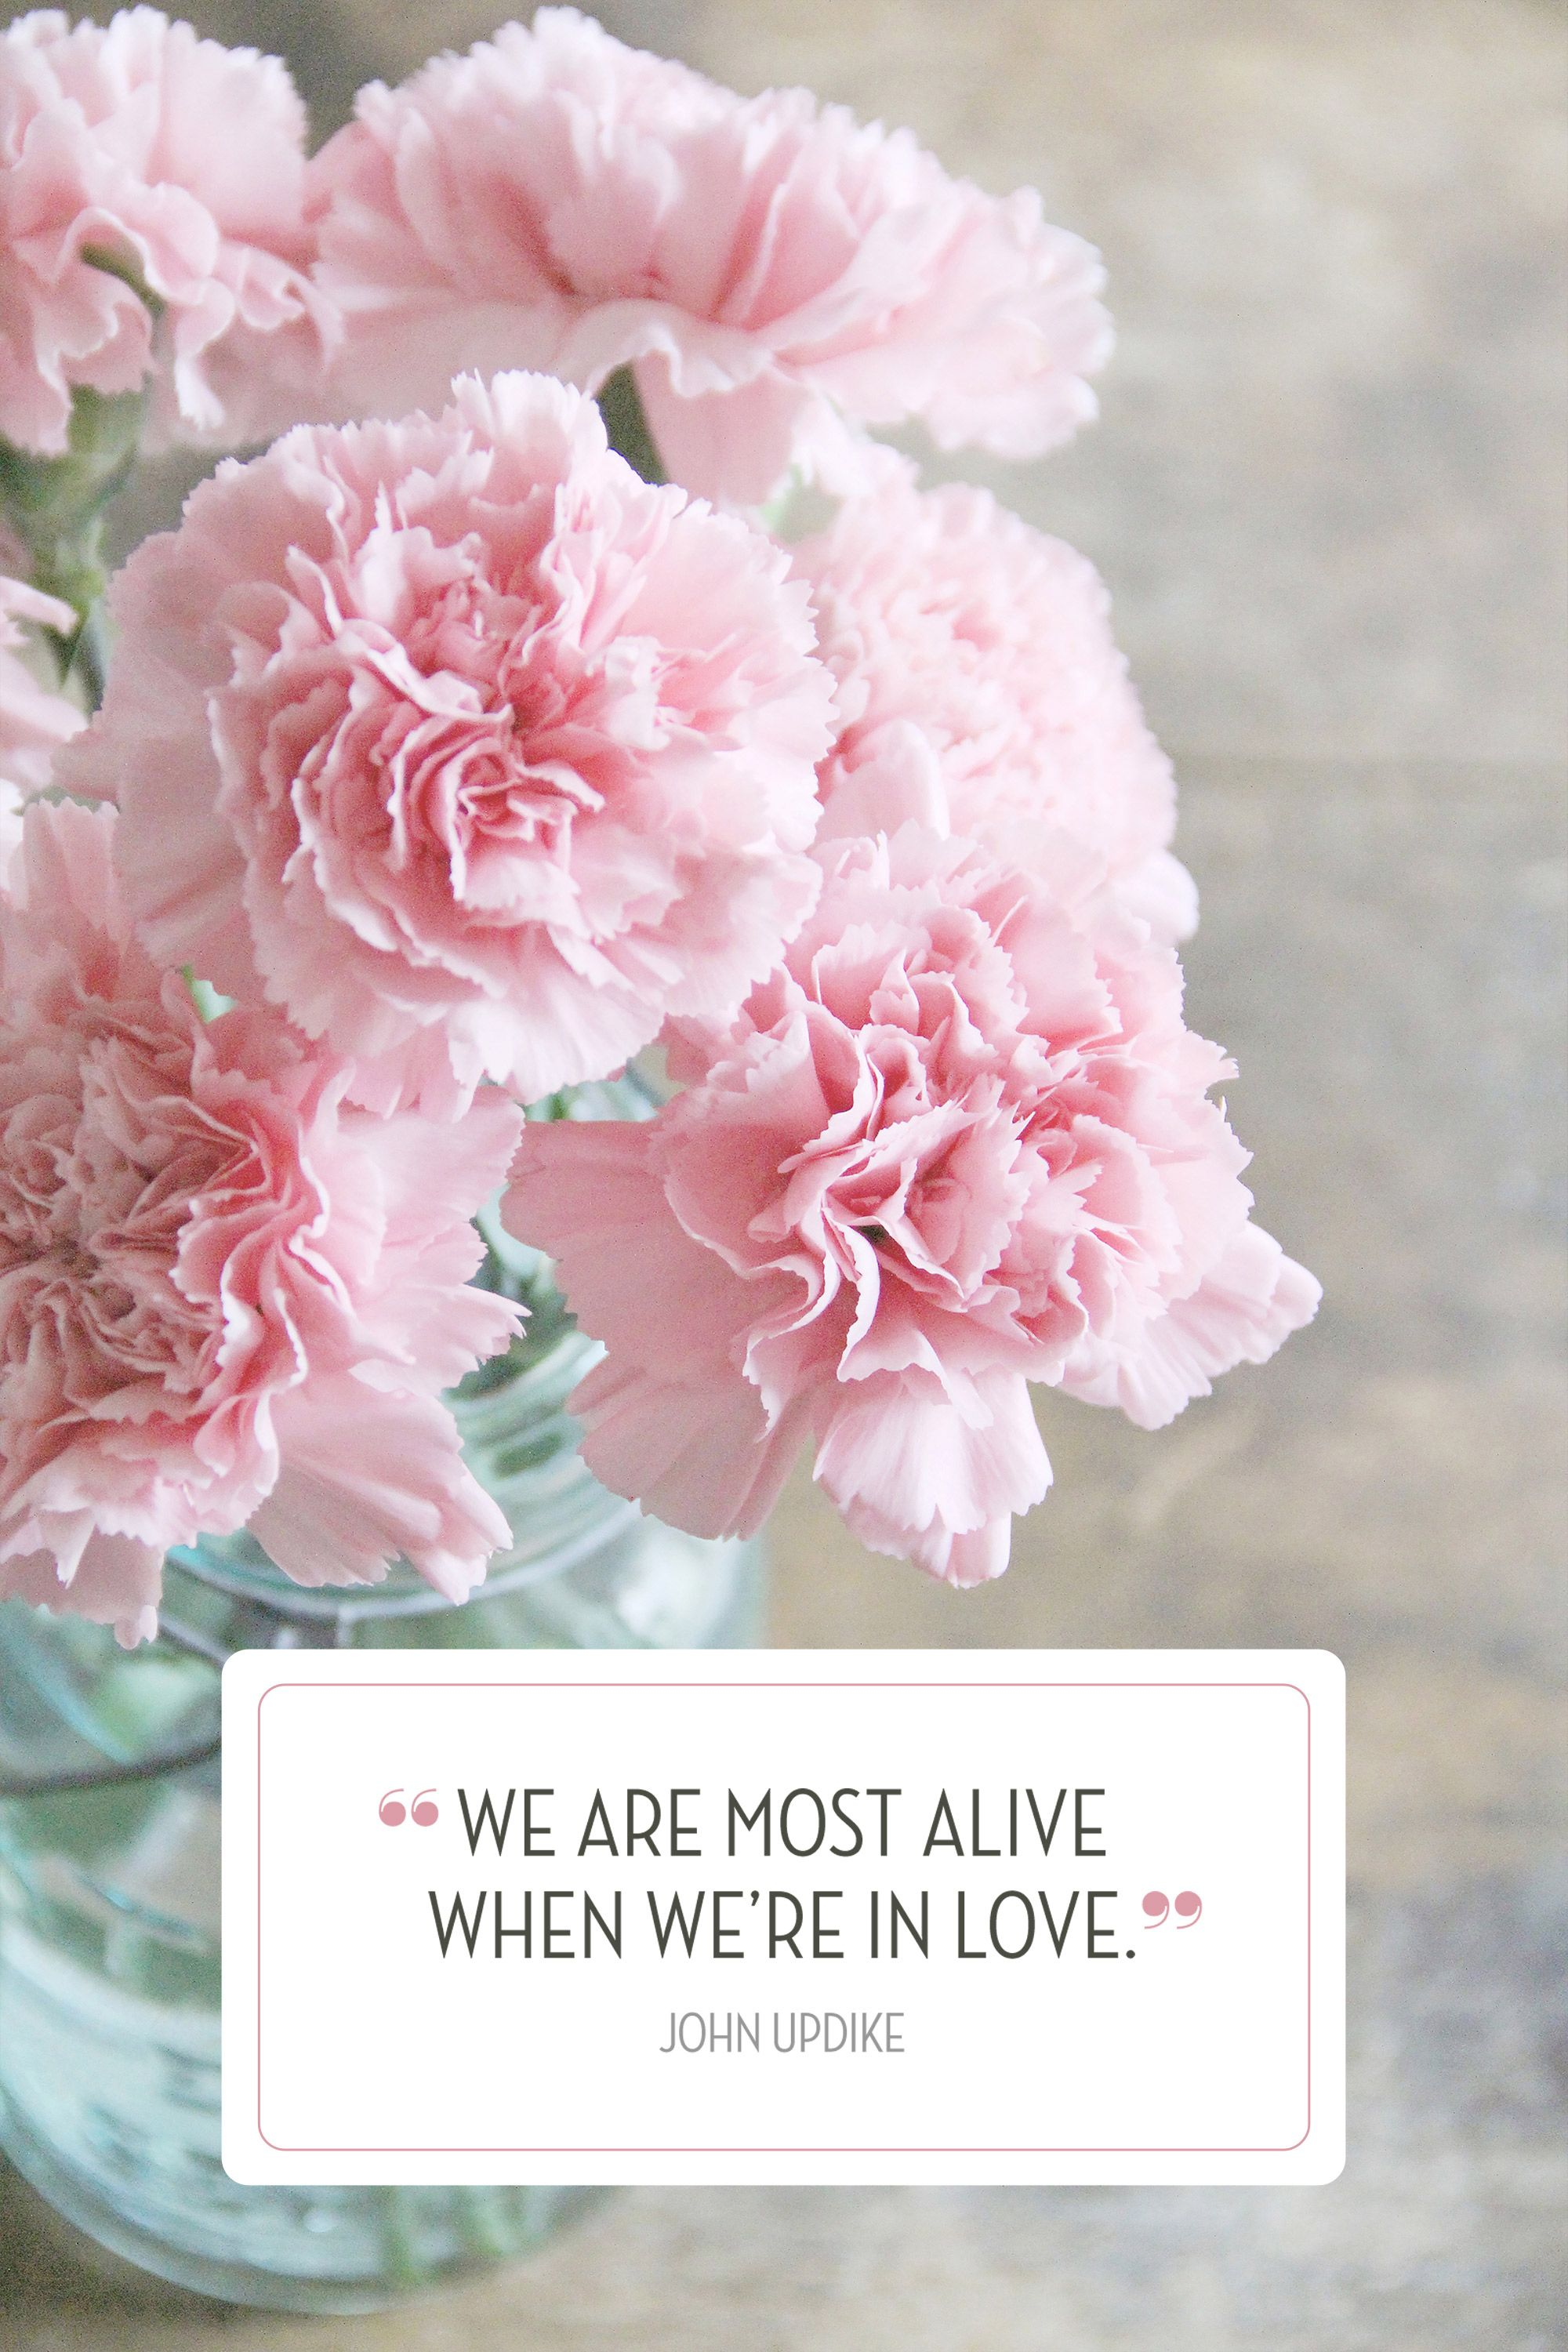 Flowers Love Quotes 14 Valentine's Day Quotes That'll Sweep Them Off Their Feet